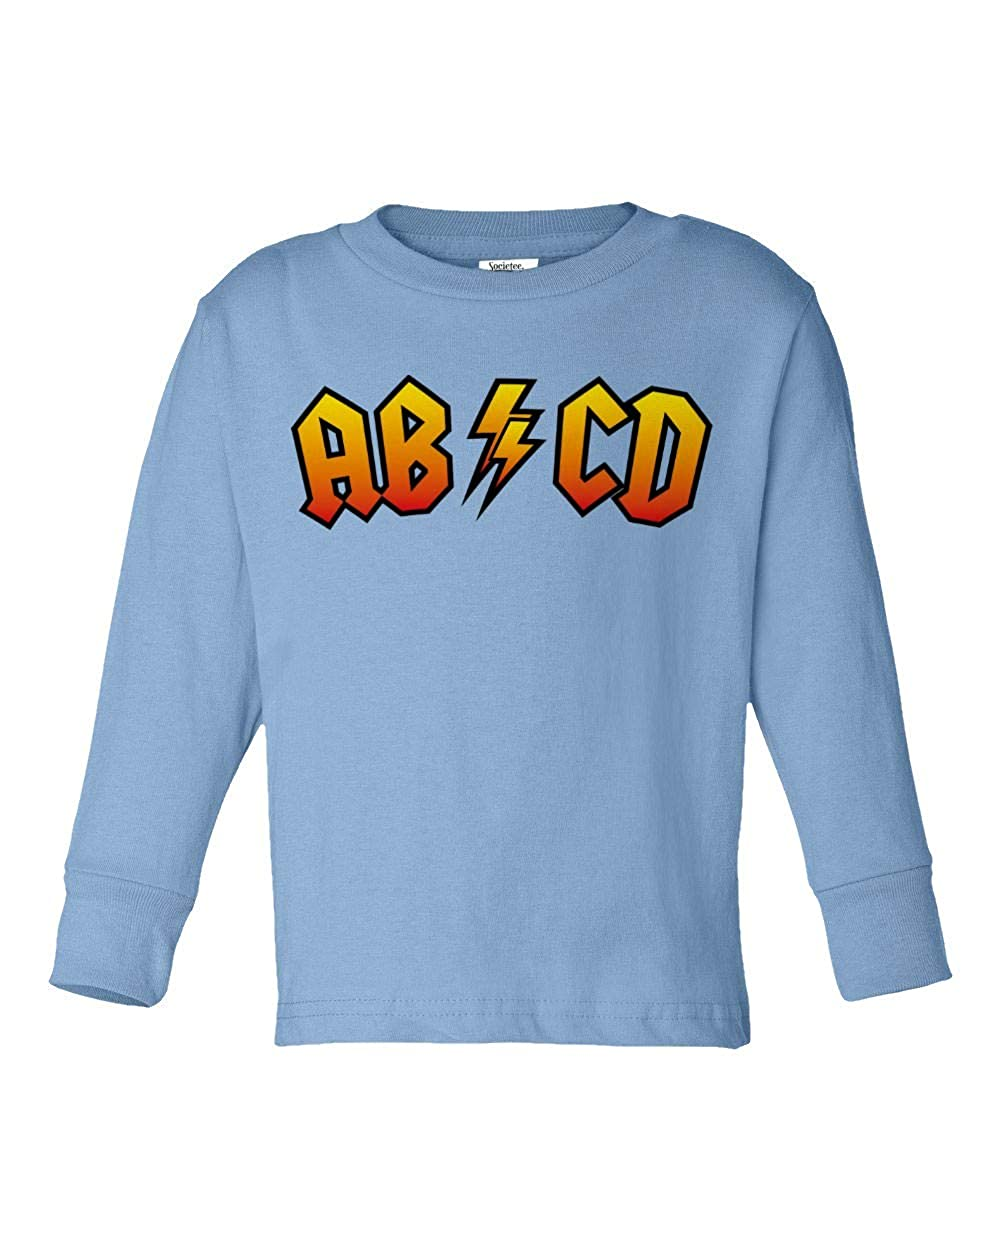 Societee ABCD Funny Cool Girls Boys Toddler Long Sleeve T-Shirt